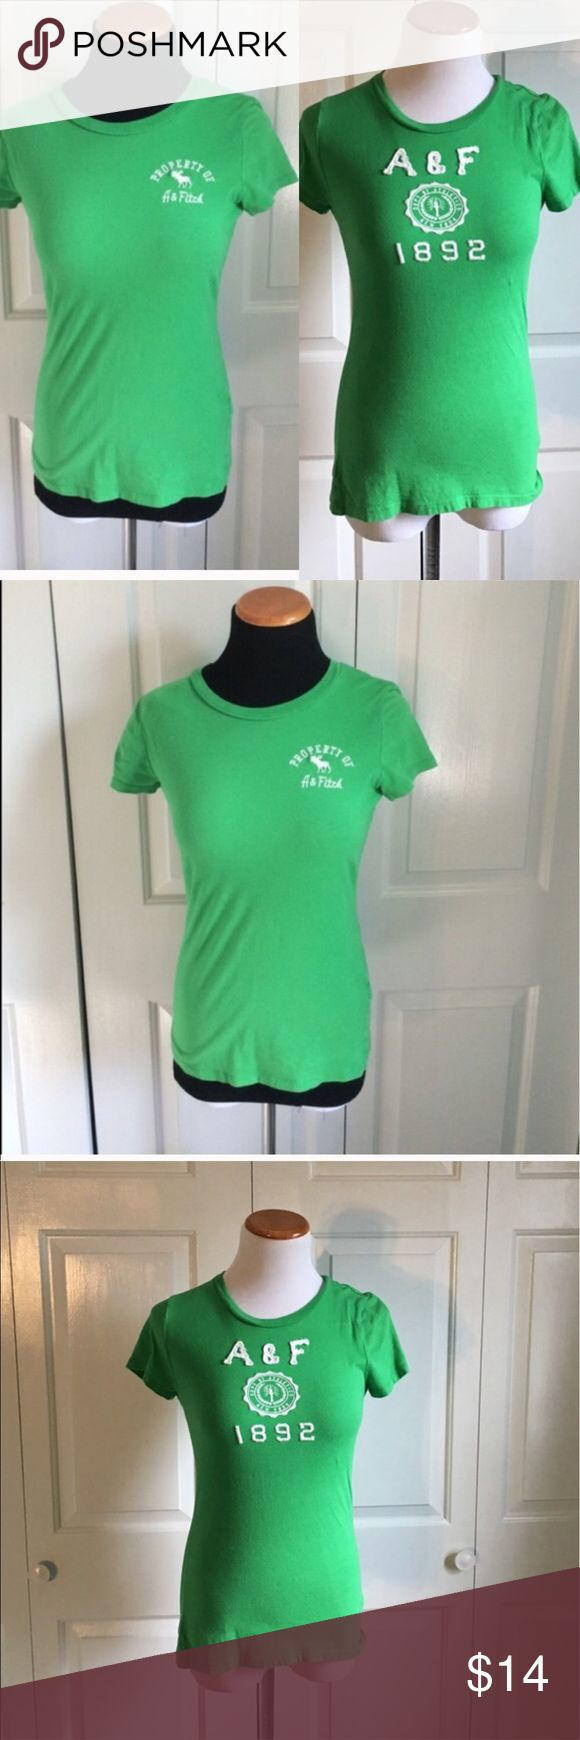 Abercrombie & Fitch T-Shirt Bundle Two Kelly green Abercrombie and Fitch t-shirts in excellent condition. Both size medium. Abercrombie & Fitch Tops Tees - Short Sleeve